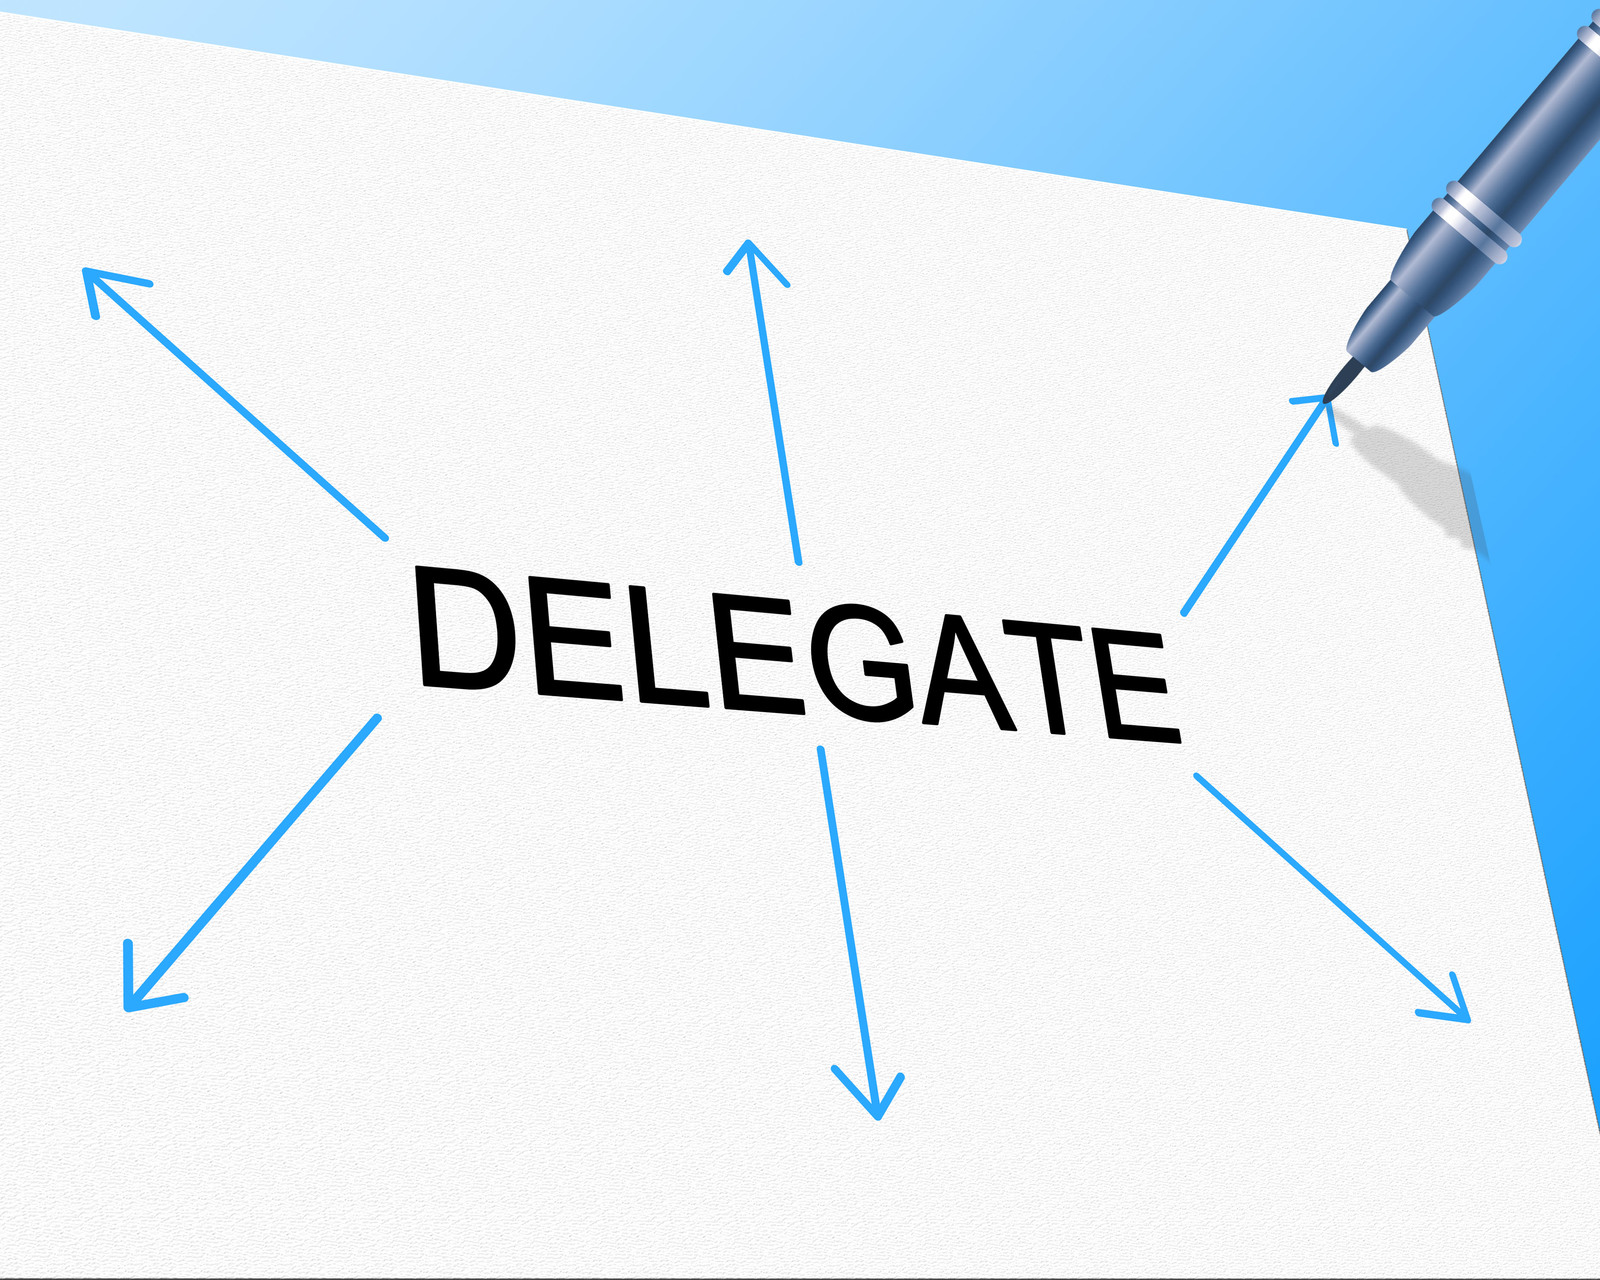 delegating tasks is ensuring everyone in the team wins